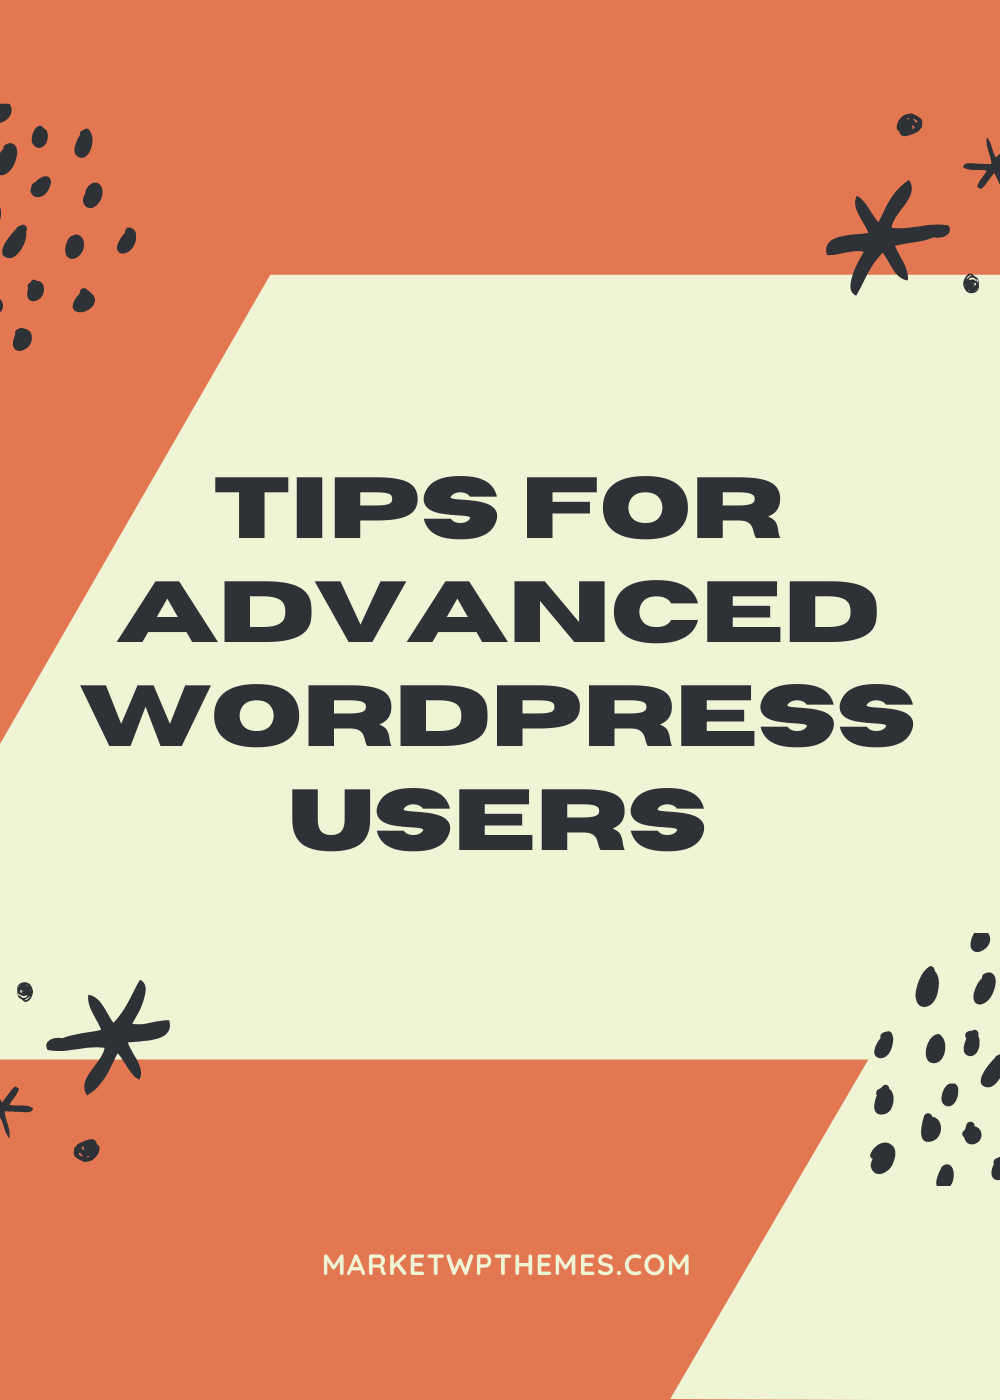 Tips for Advanced WordPress Users